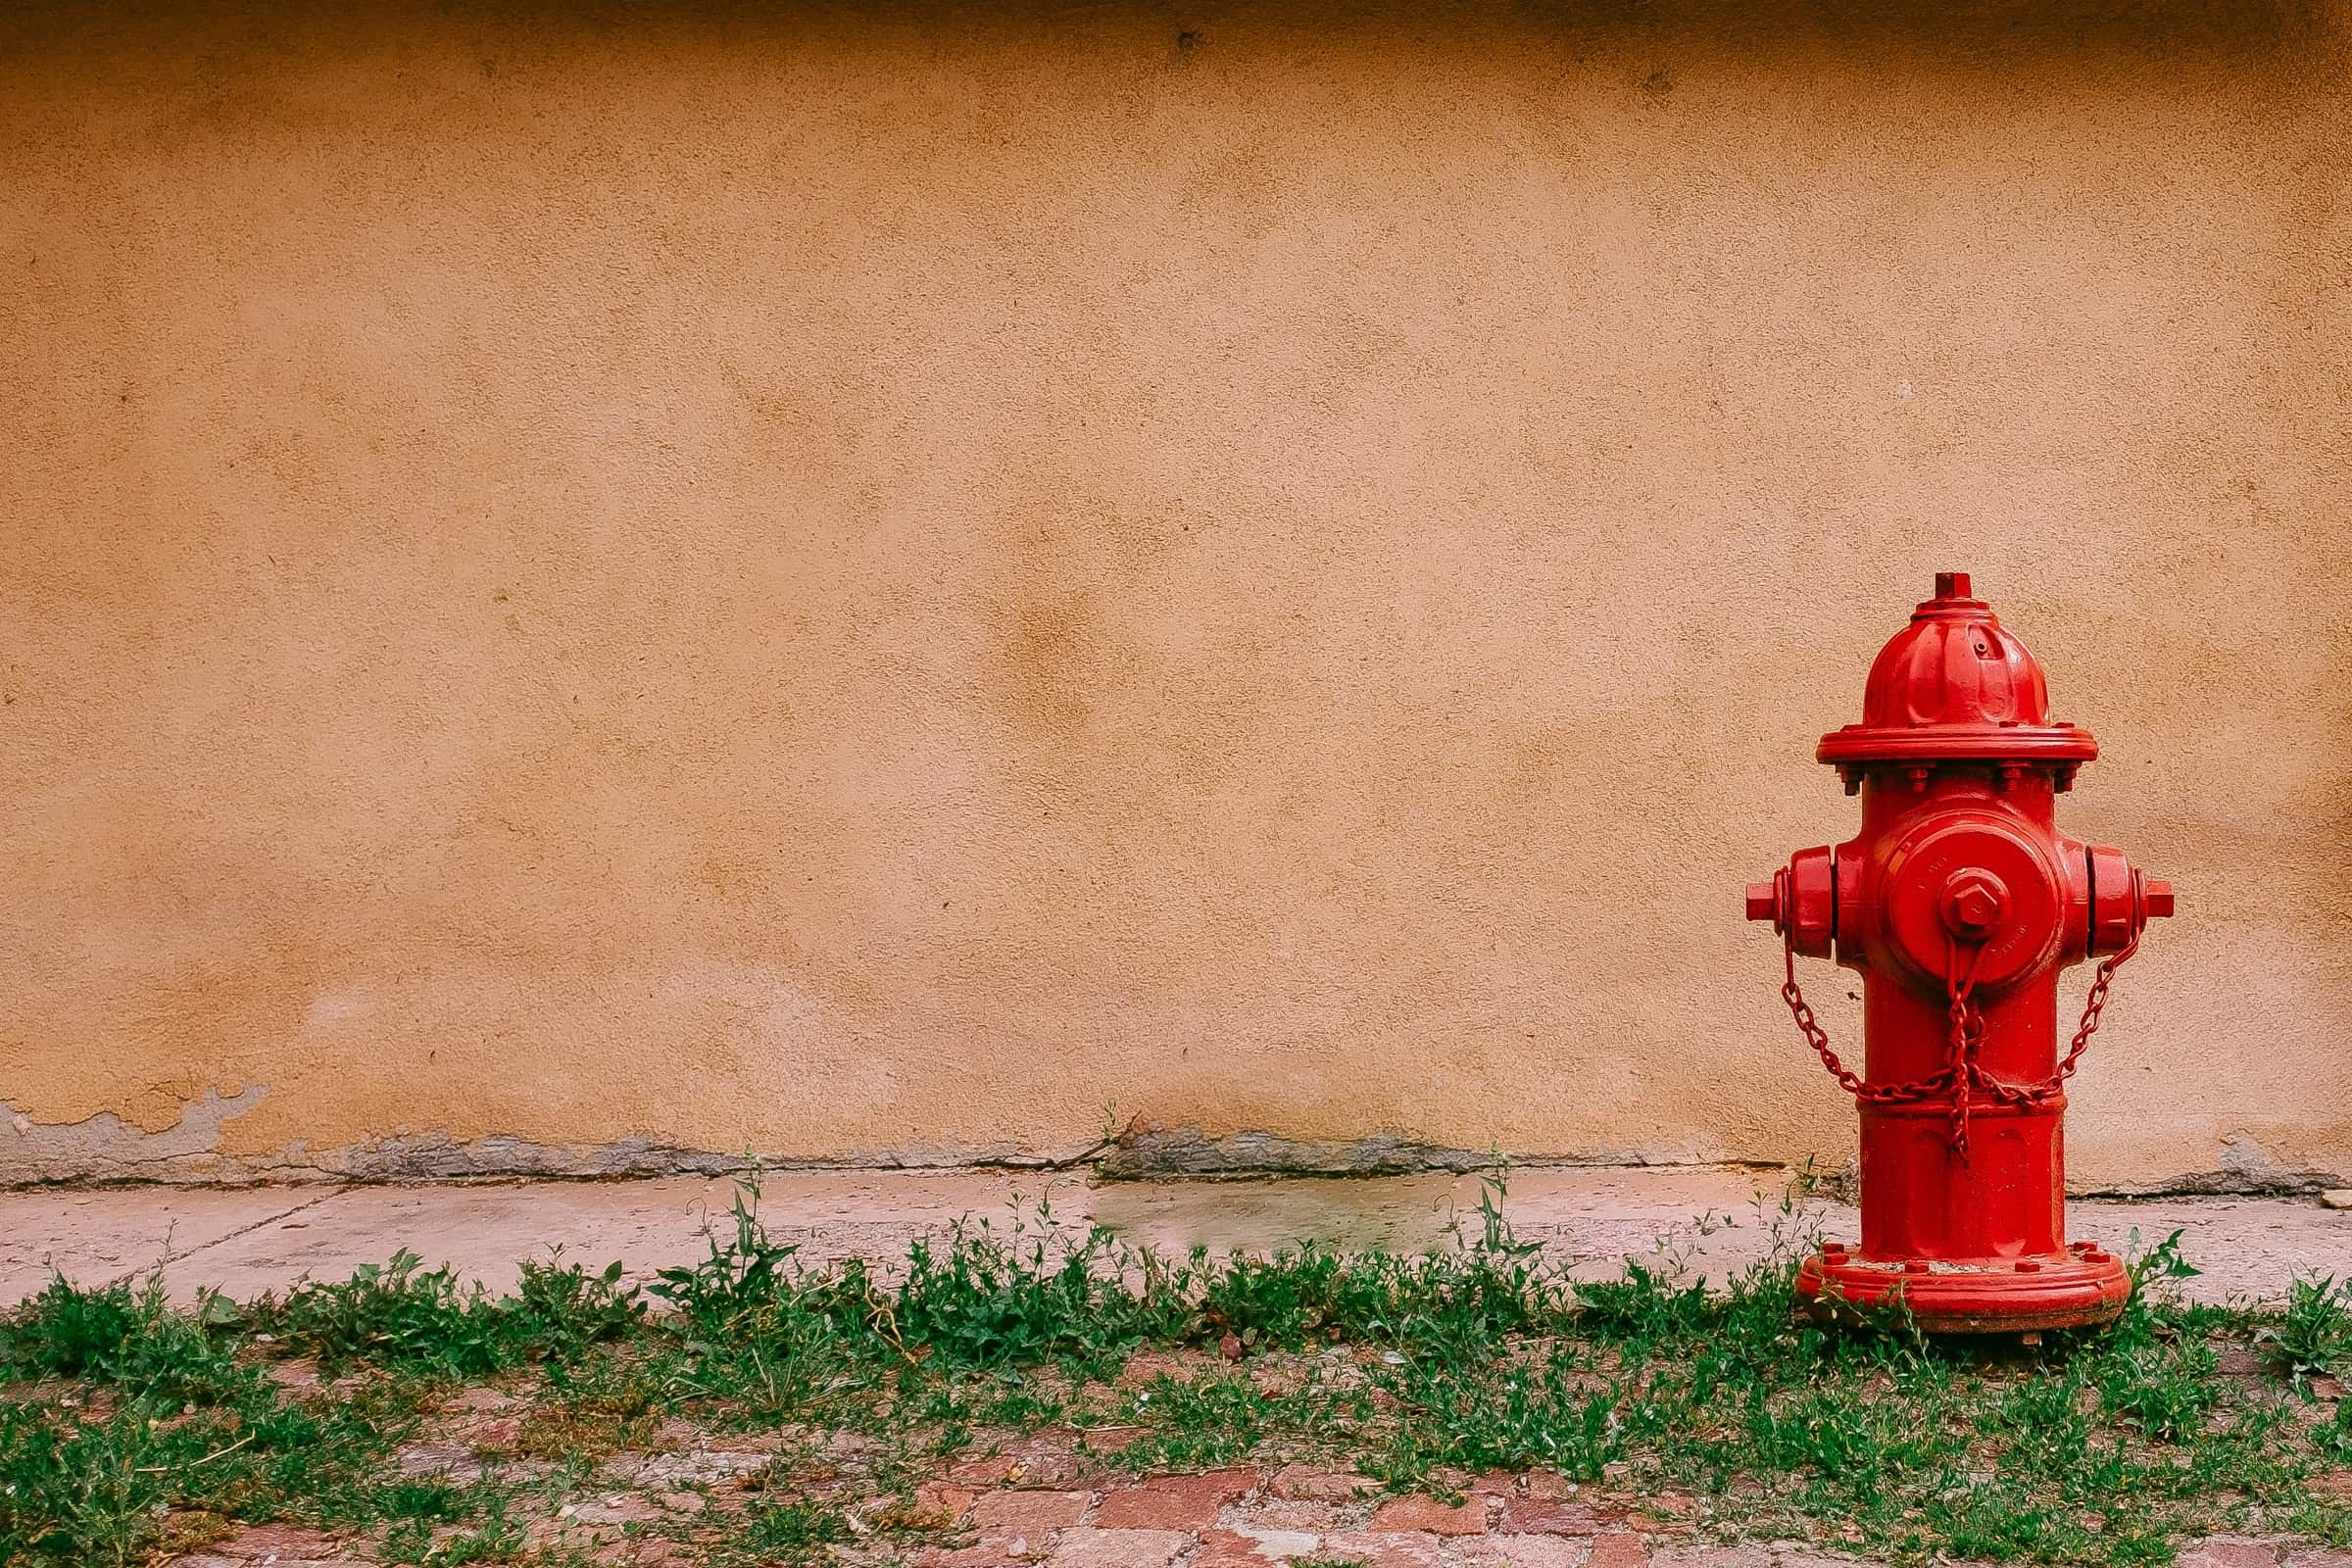 private fire hydrant